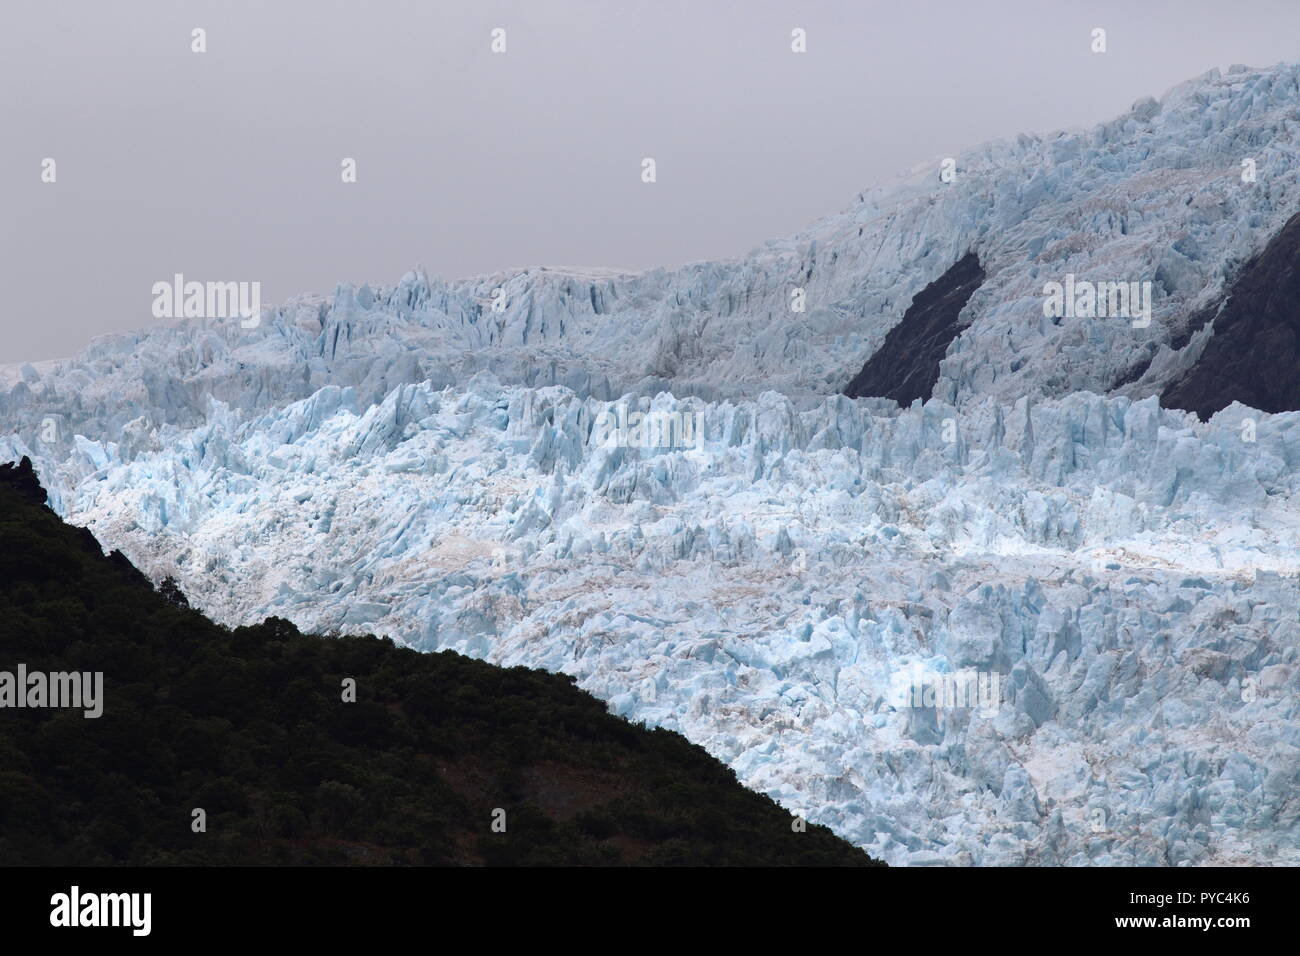 Geological icefall feature of Franz Josef Glacier, a view from a New Zealand Tourist site on the west coast, part of the glacier peak frozen river. - Stock Image